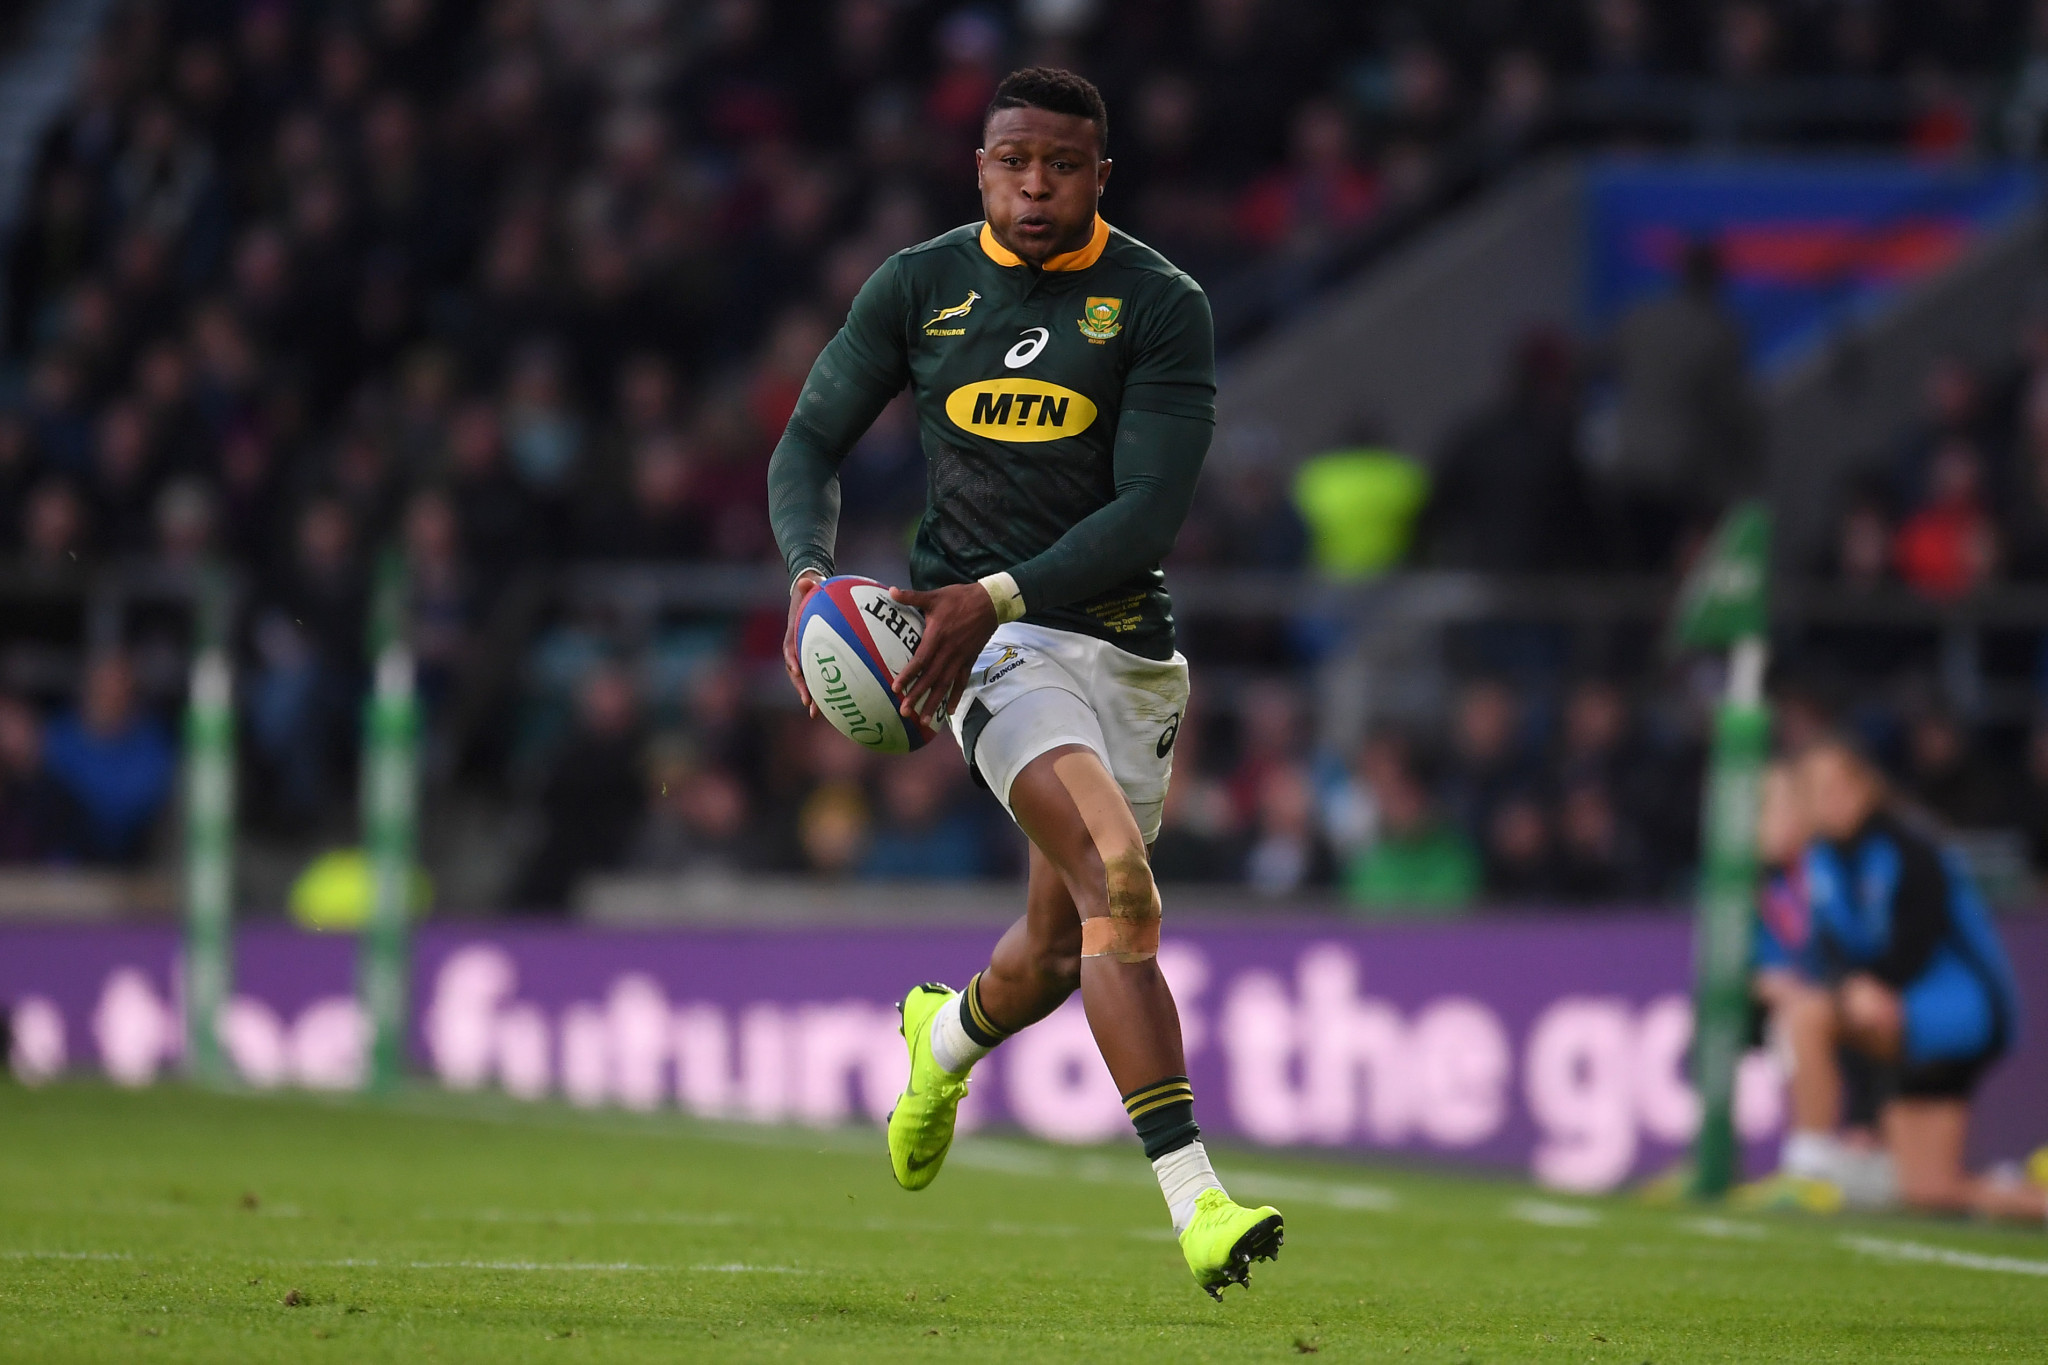 South African rugby ace Dyantyi faces ban after failing drugs test